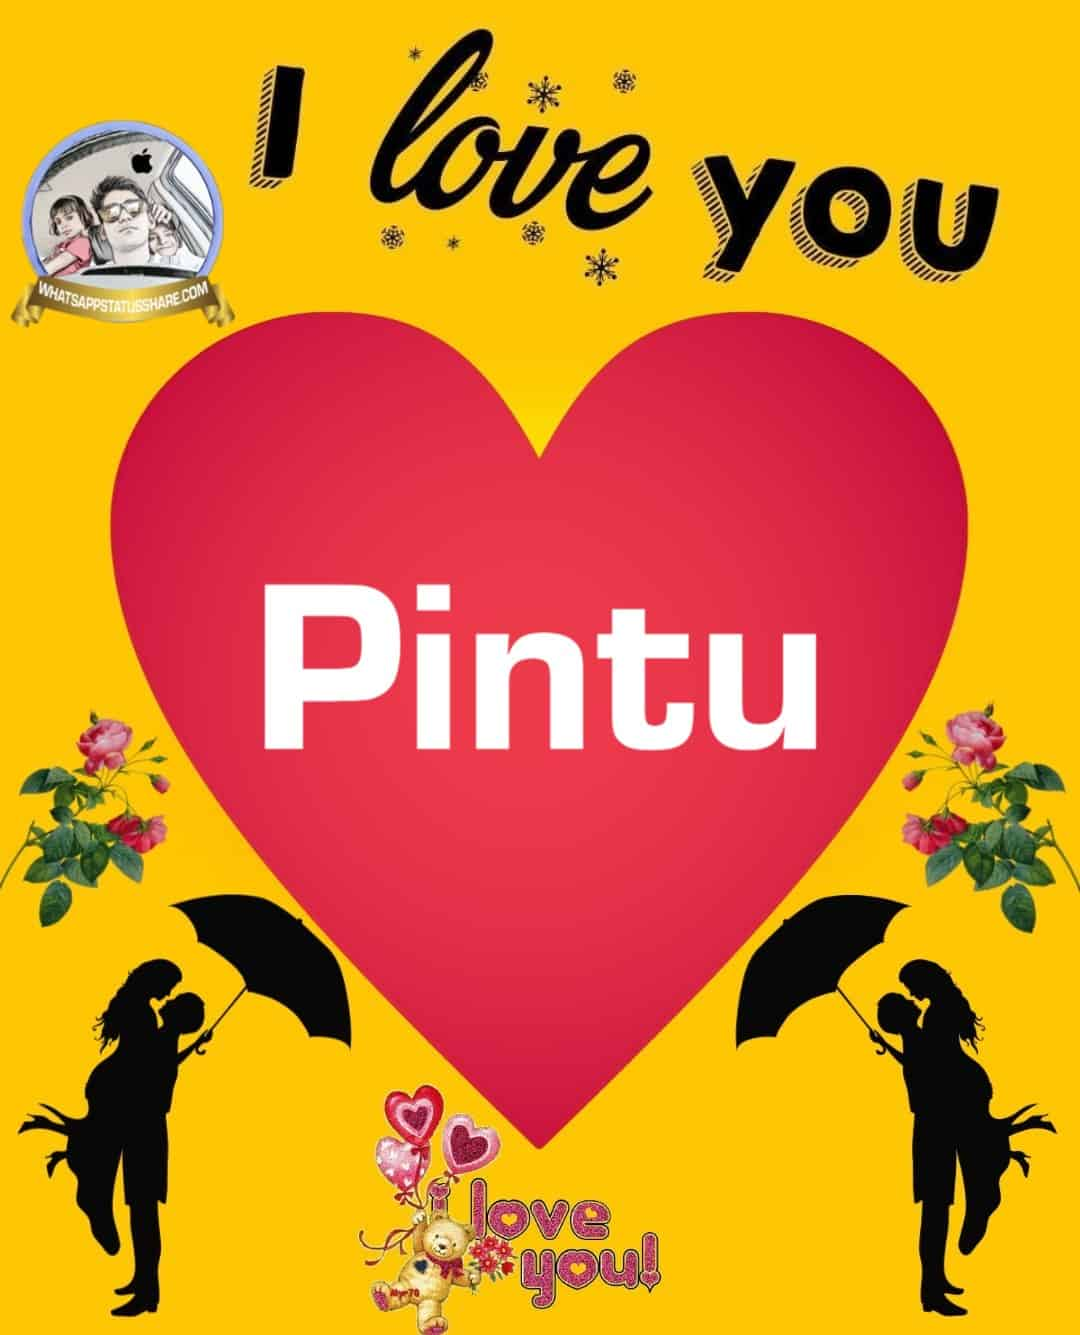 Trending Nameart Stylish All Names Dp Images Videos Download Any Name Art Ideas 0 fabulous a alphabet wallpaper names 365 sewn hearts f love. trending nameart stylish all names dp